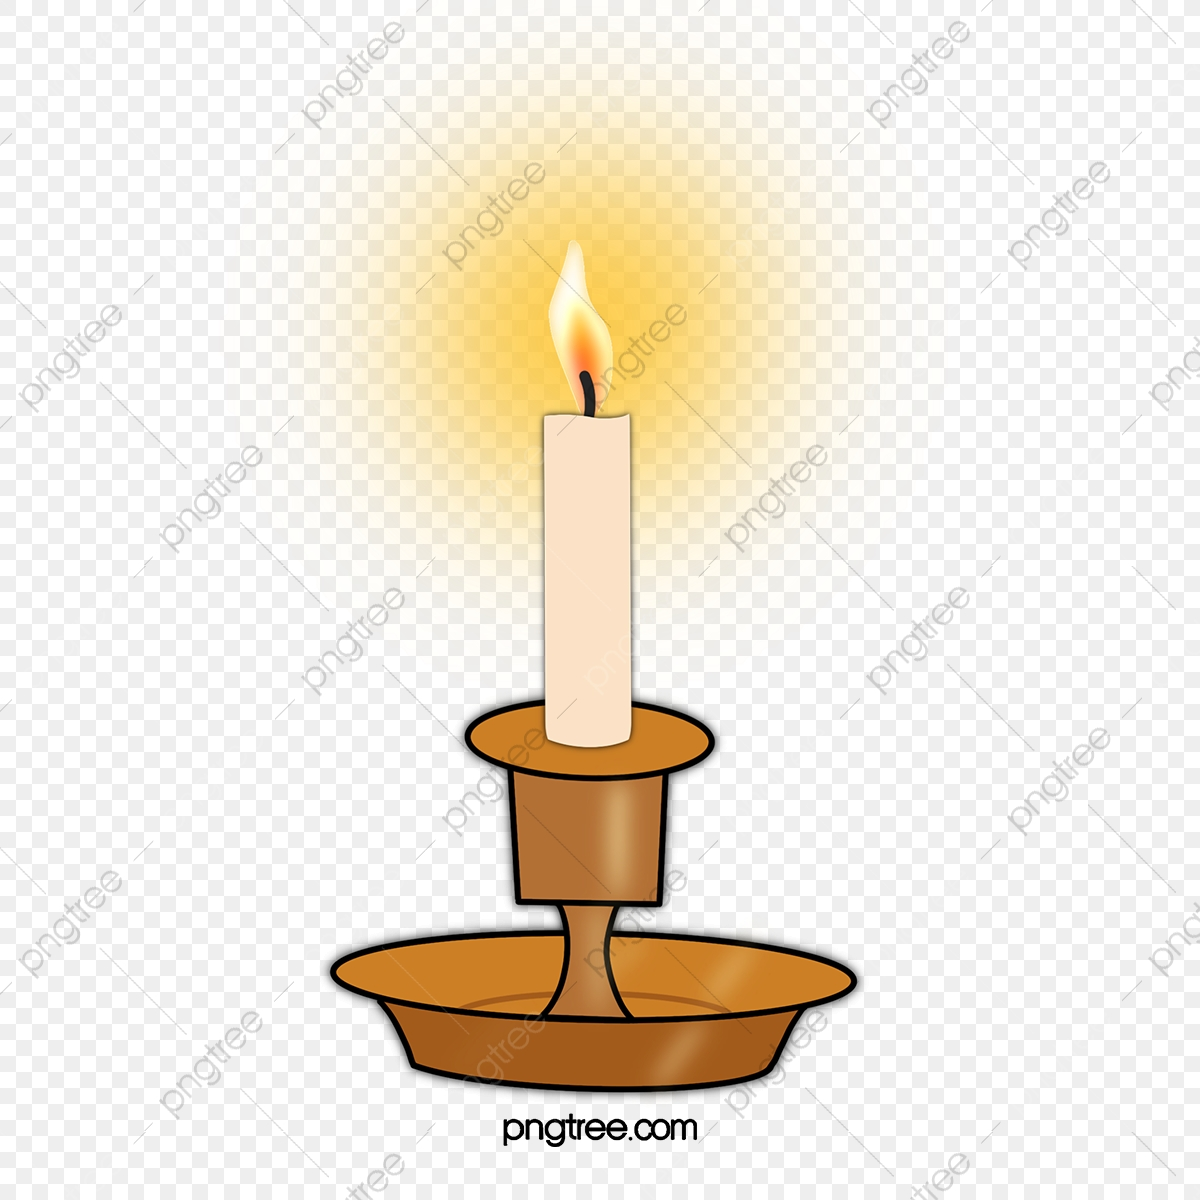 Candles clipart burning. Combustion candle white png